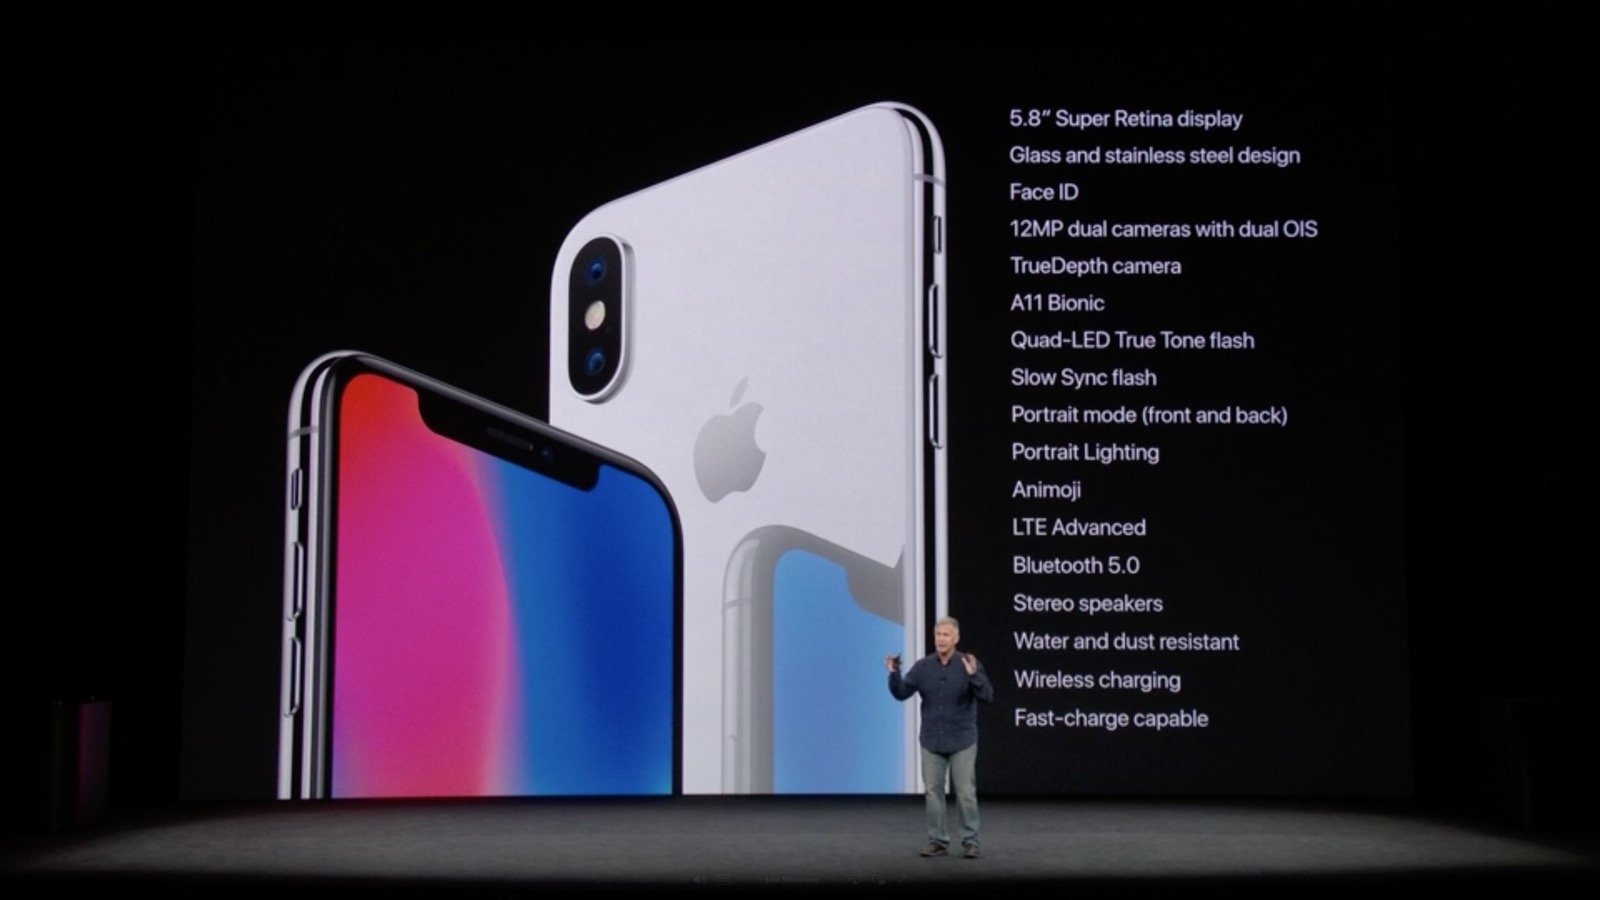 Apple_September_2017_iPhone_X_keynote_-2017-09-12-at-11.45.51-AM.jpg